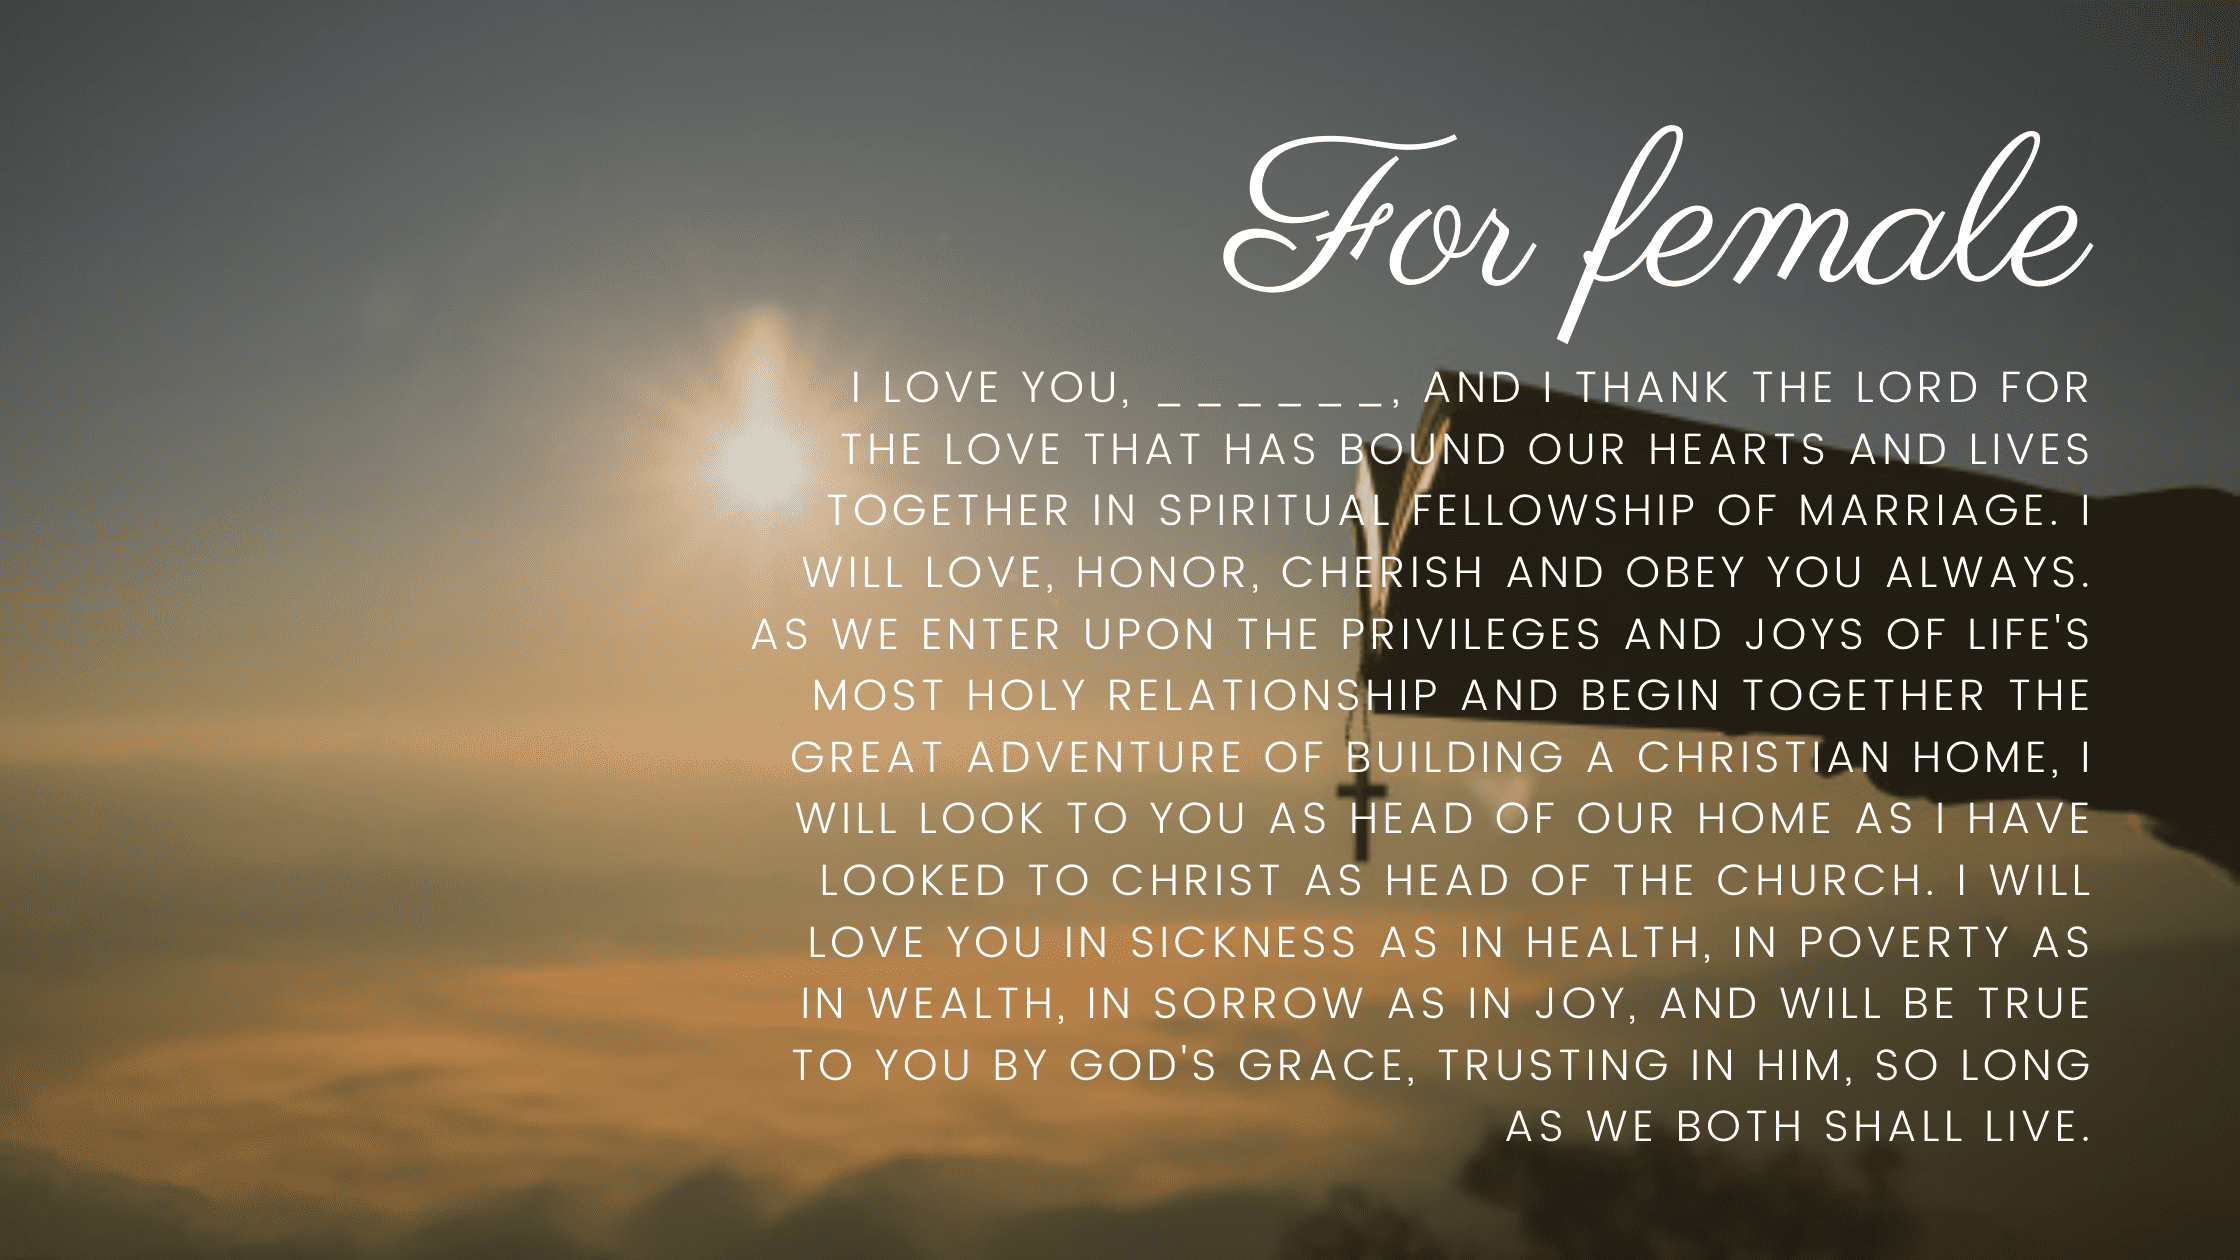 Christian Wedding Vows for her